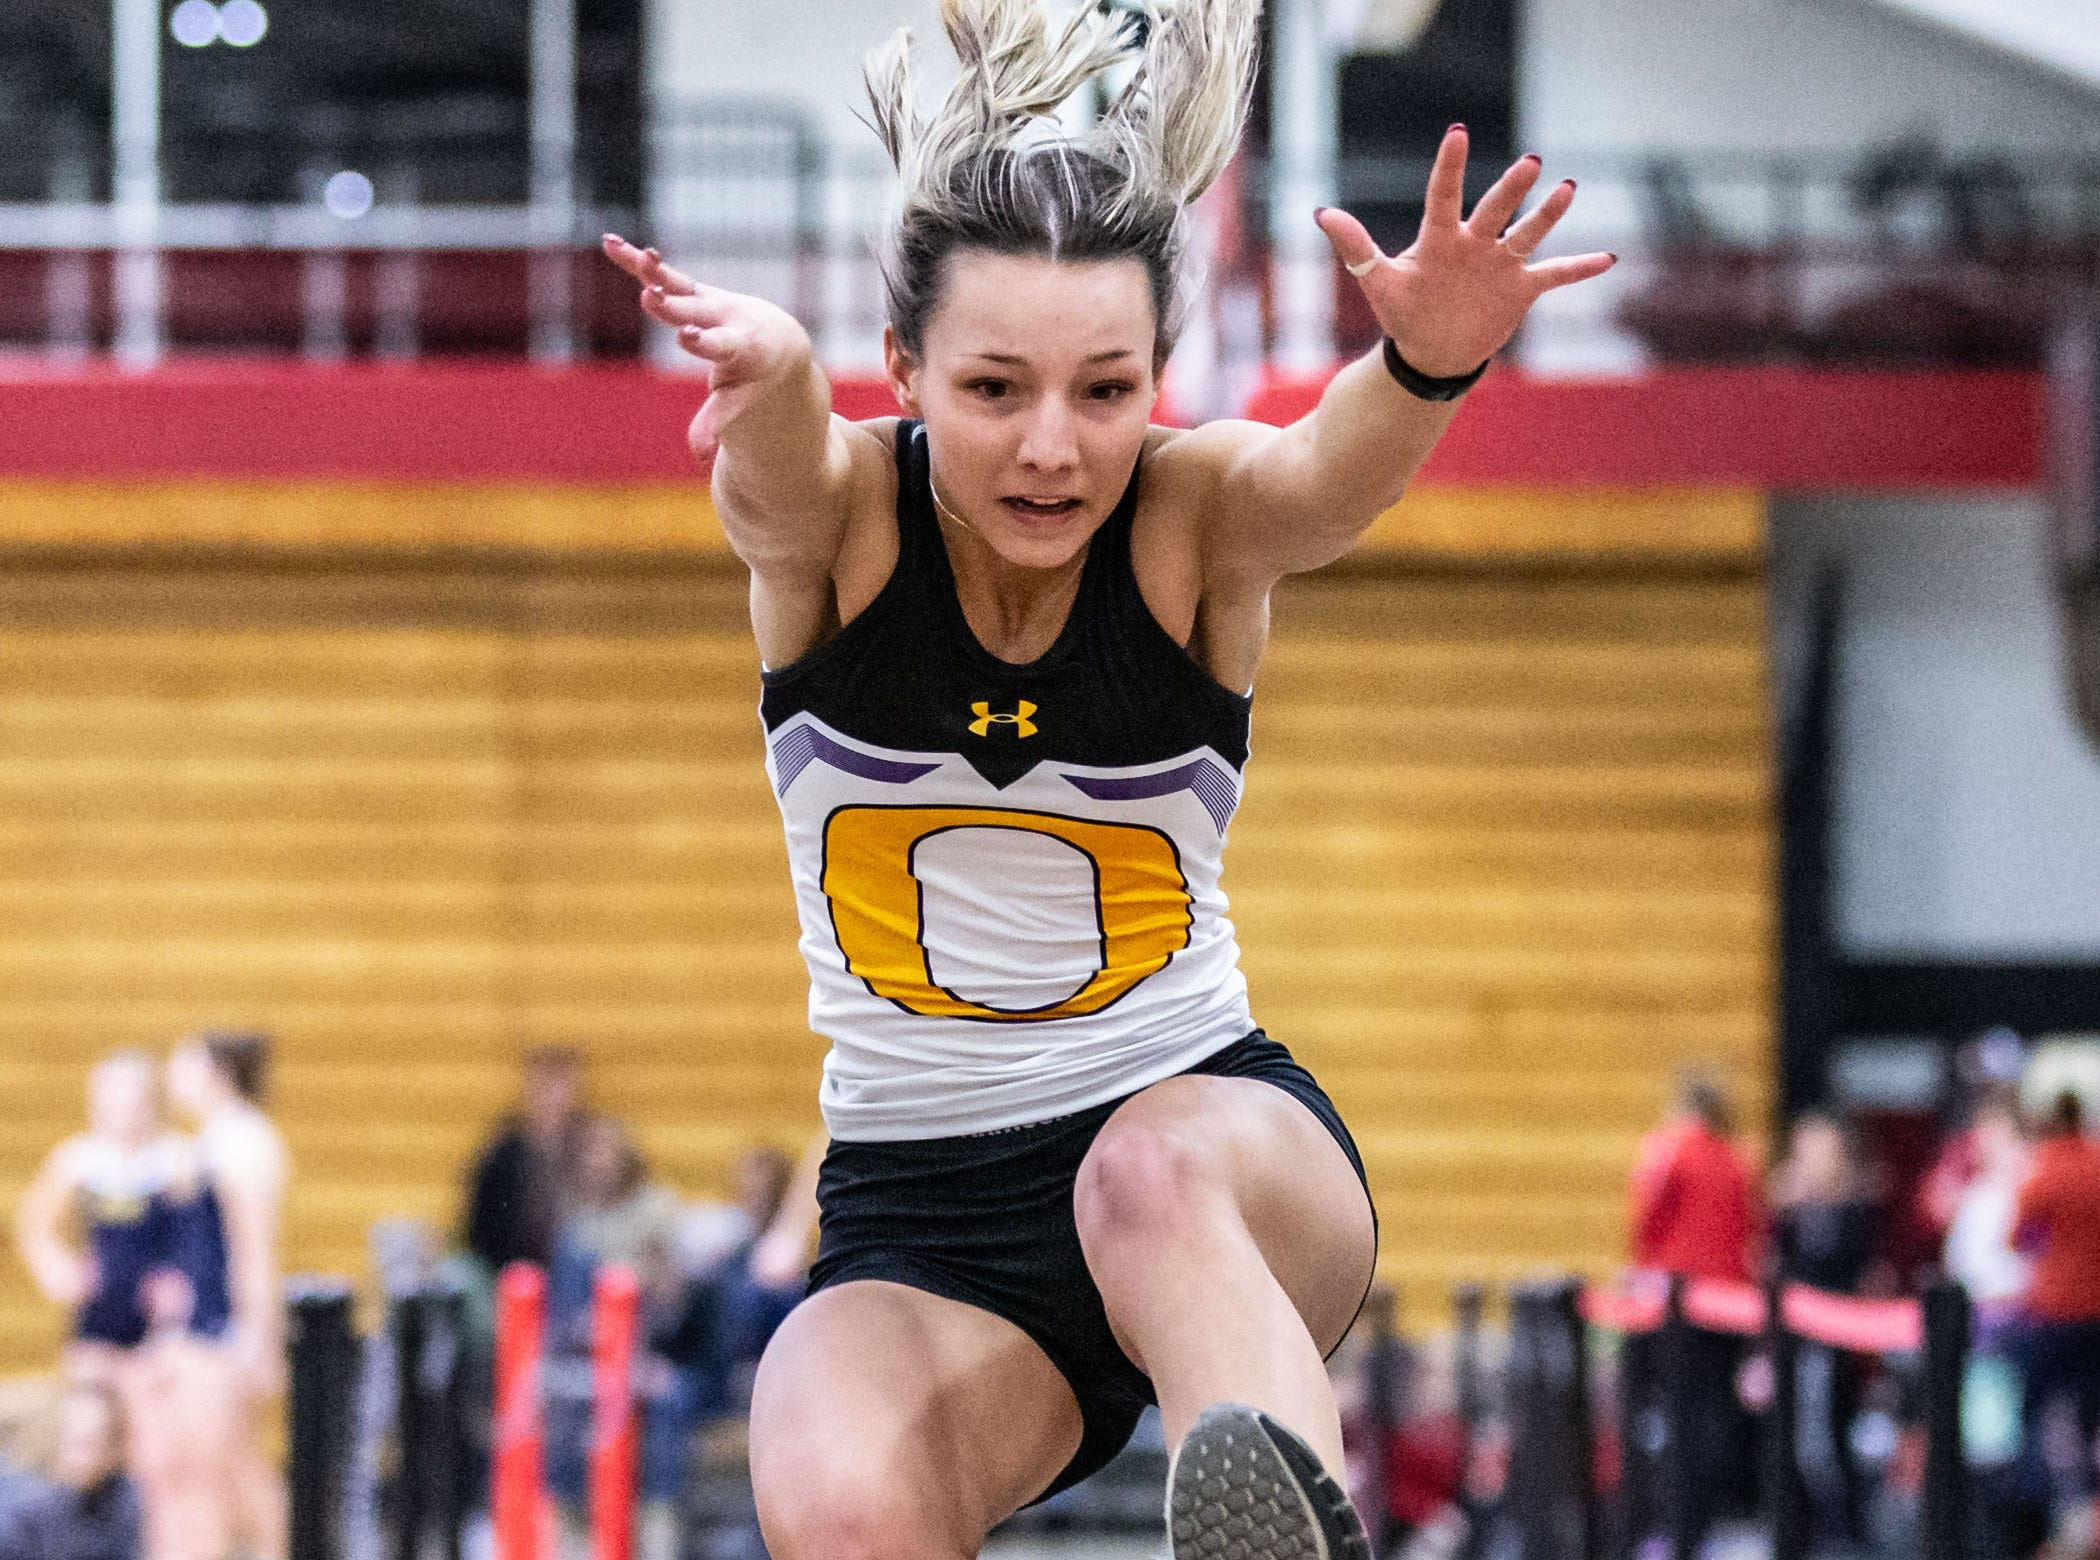 Oconomowoc's Sarah Letscher competes in the long jump at the Peter Rempe Cardinal Relays hosted by Waukesha South on Thursday, March 21, 2019.